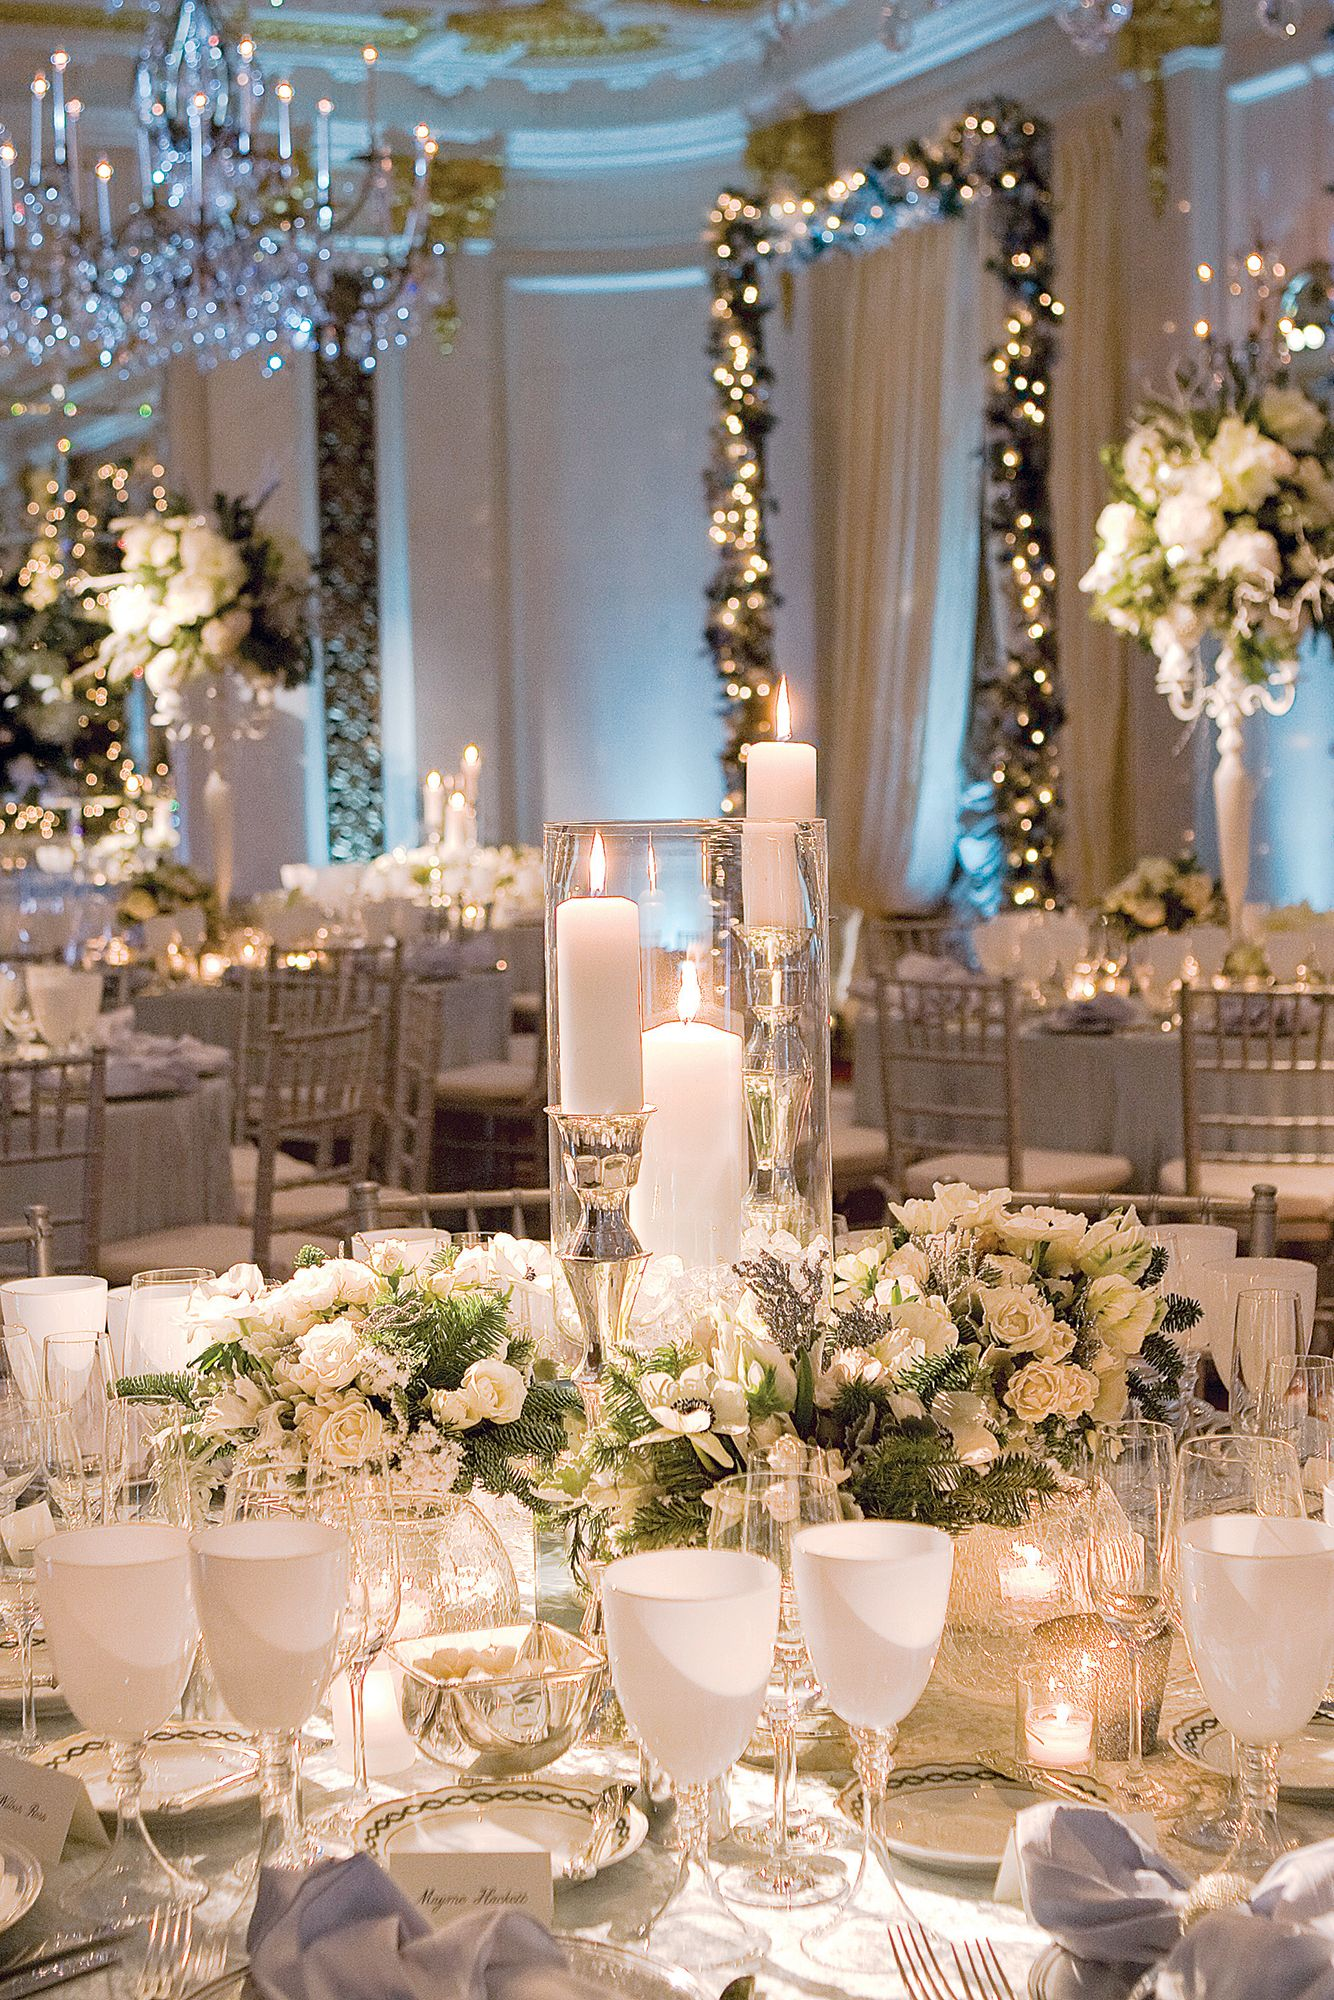 Find The Best Wedding Venue For Your Budget